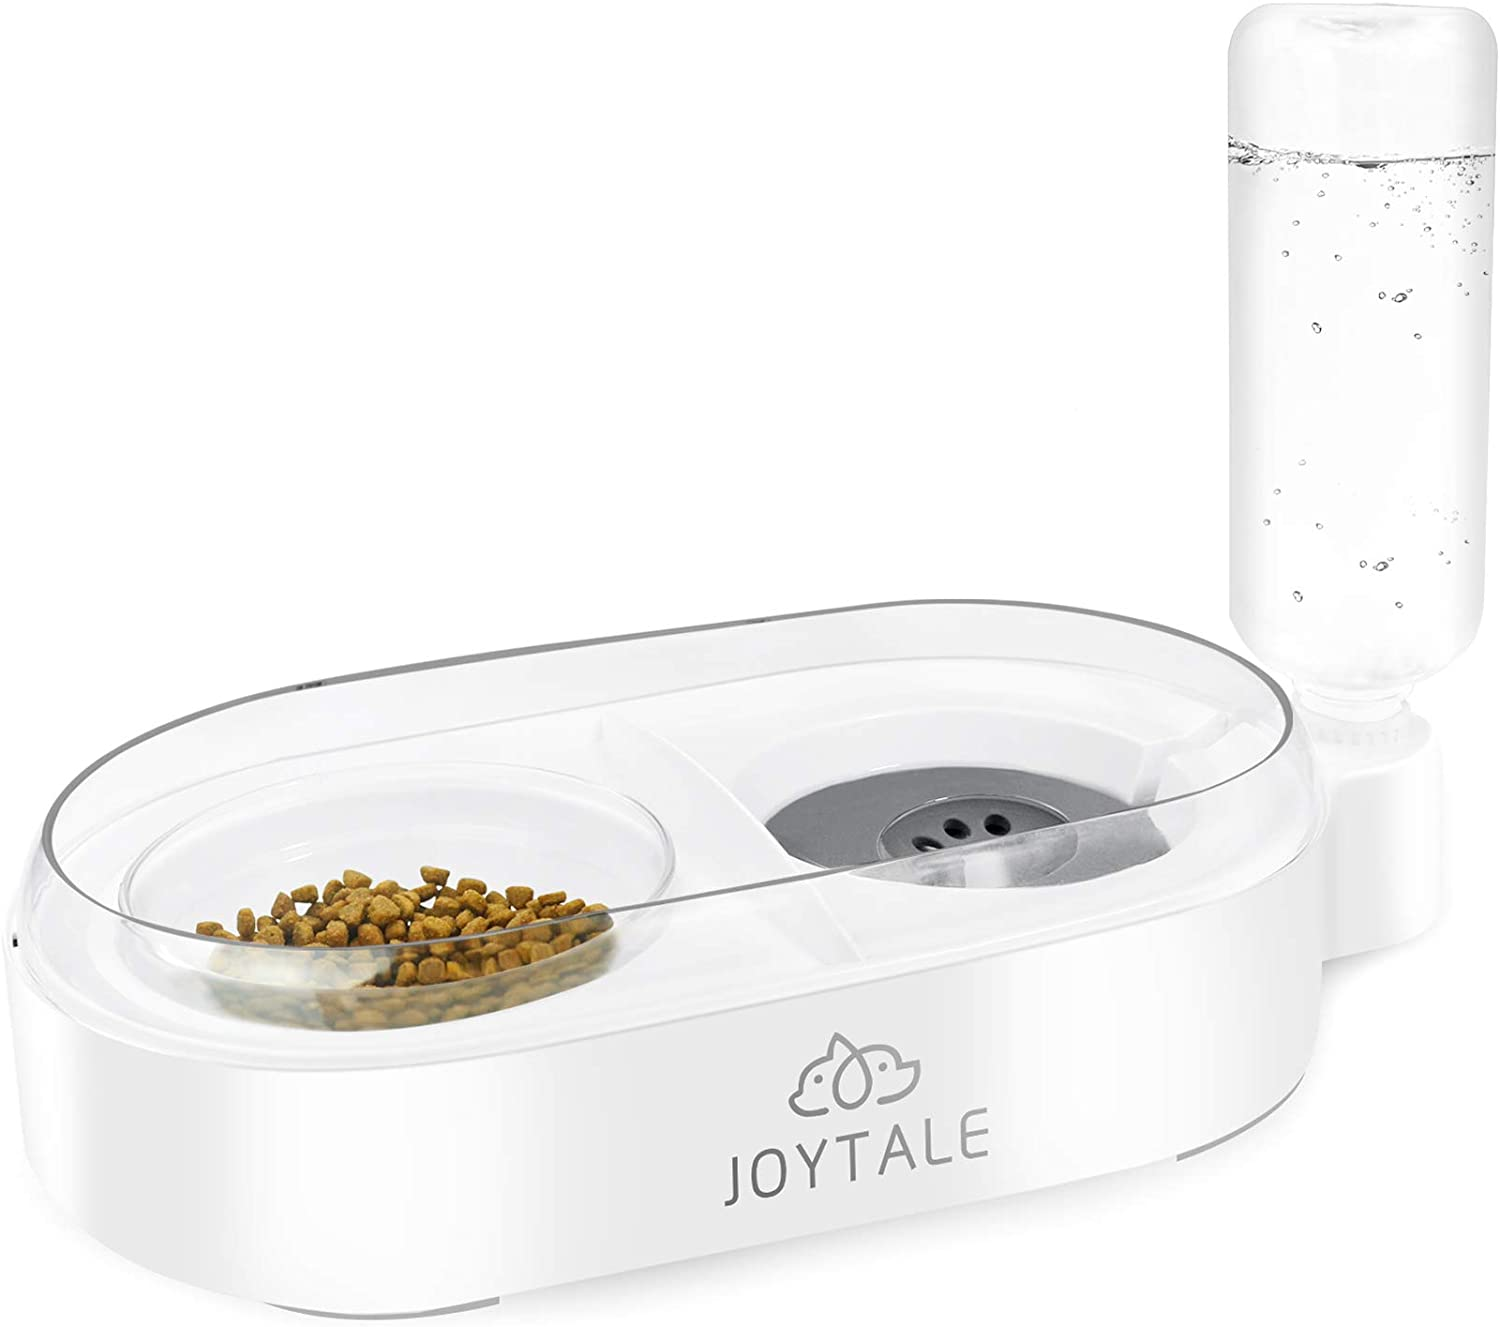 Joytale Cat Food and Water Bowls, Detachable Glass Feeder Bowl for Kitten, No-Spill Pet Bowl with Automatic Water Dispenser